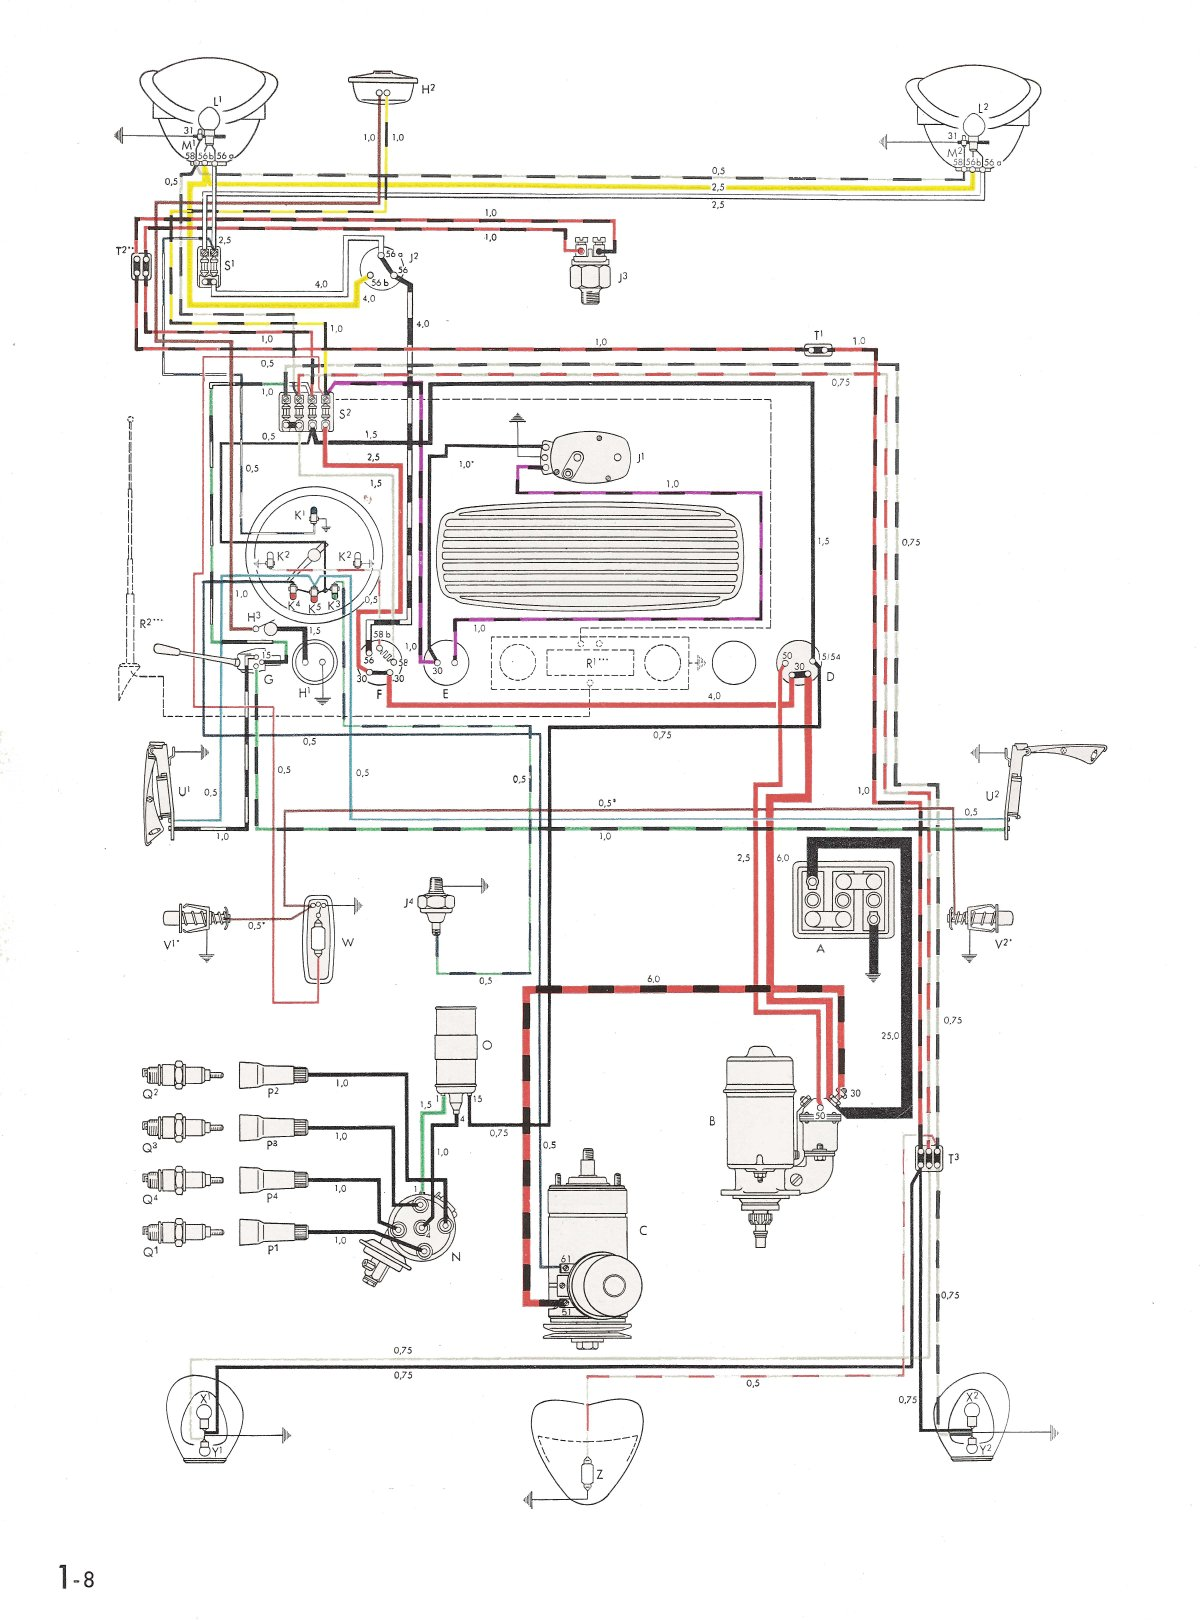 thesamba com type 1 wiring diagrams rh thesamba com 74 vw thing wiring diagram Volkswagen Super Beetle Wiring Diagram